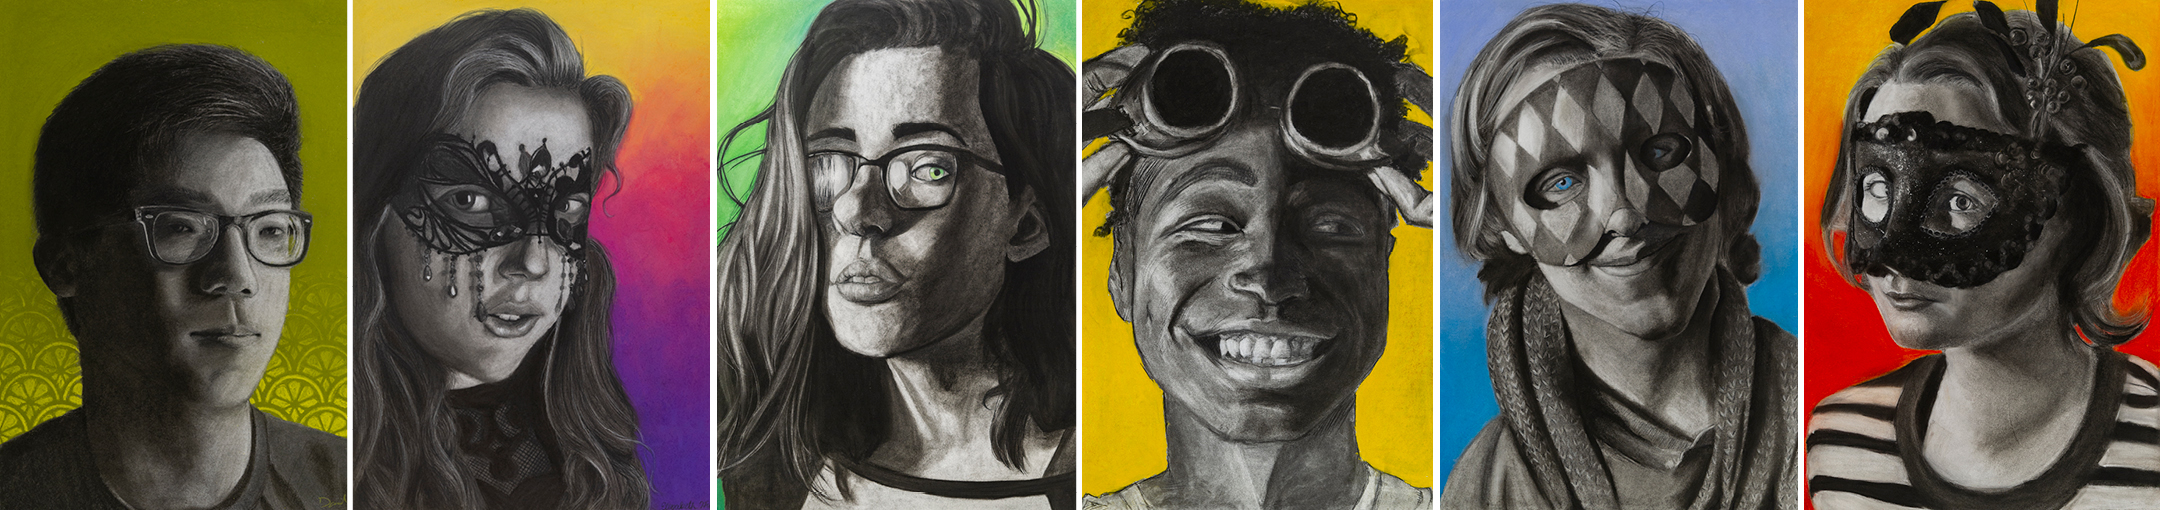 A collection of self-portraits by students